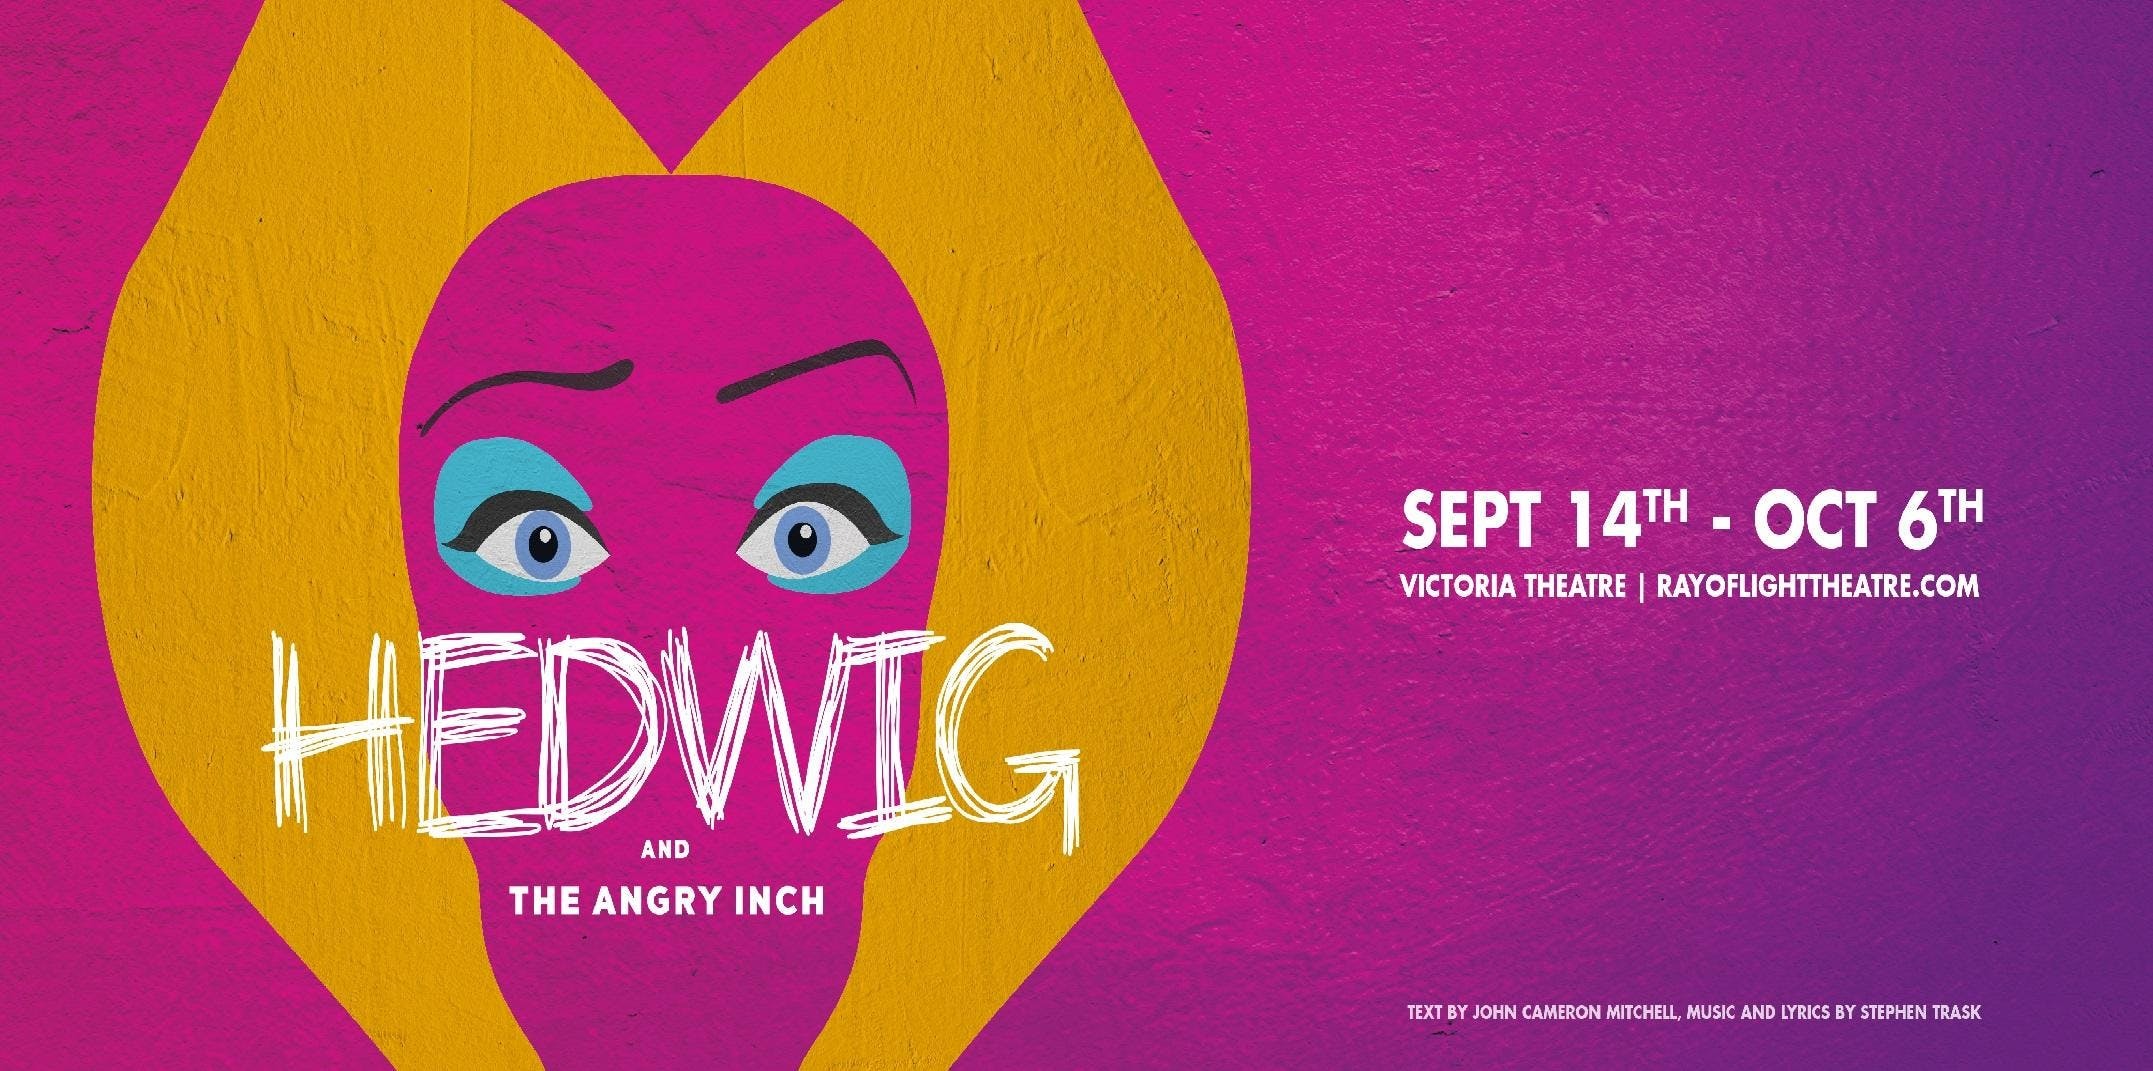 Ray of Light presents: Hedwig and the Angry I